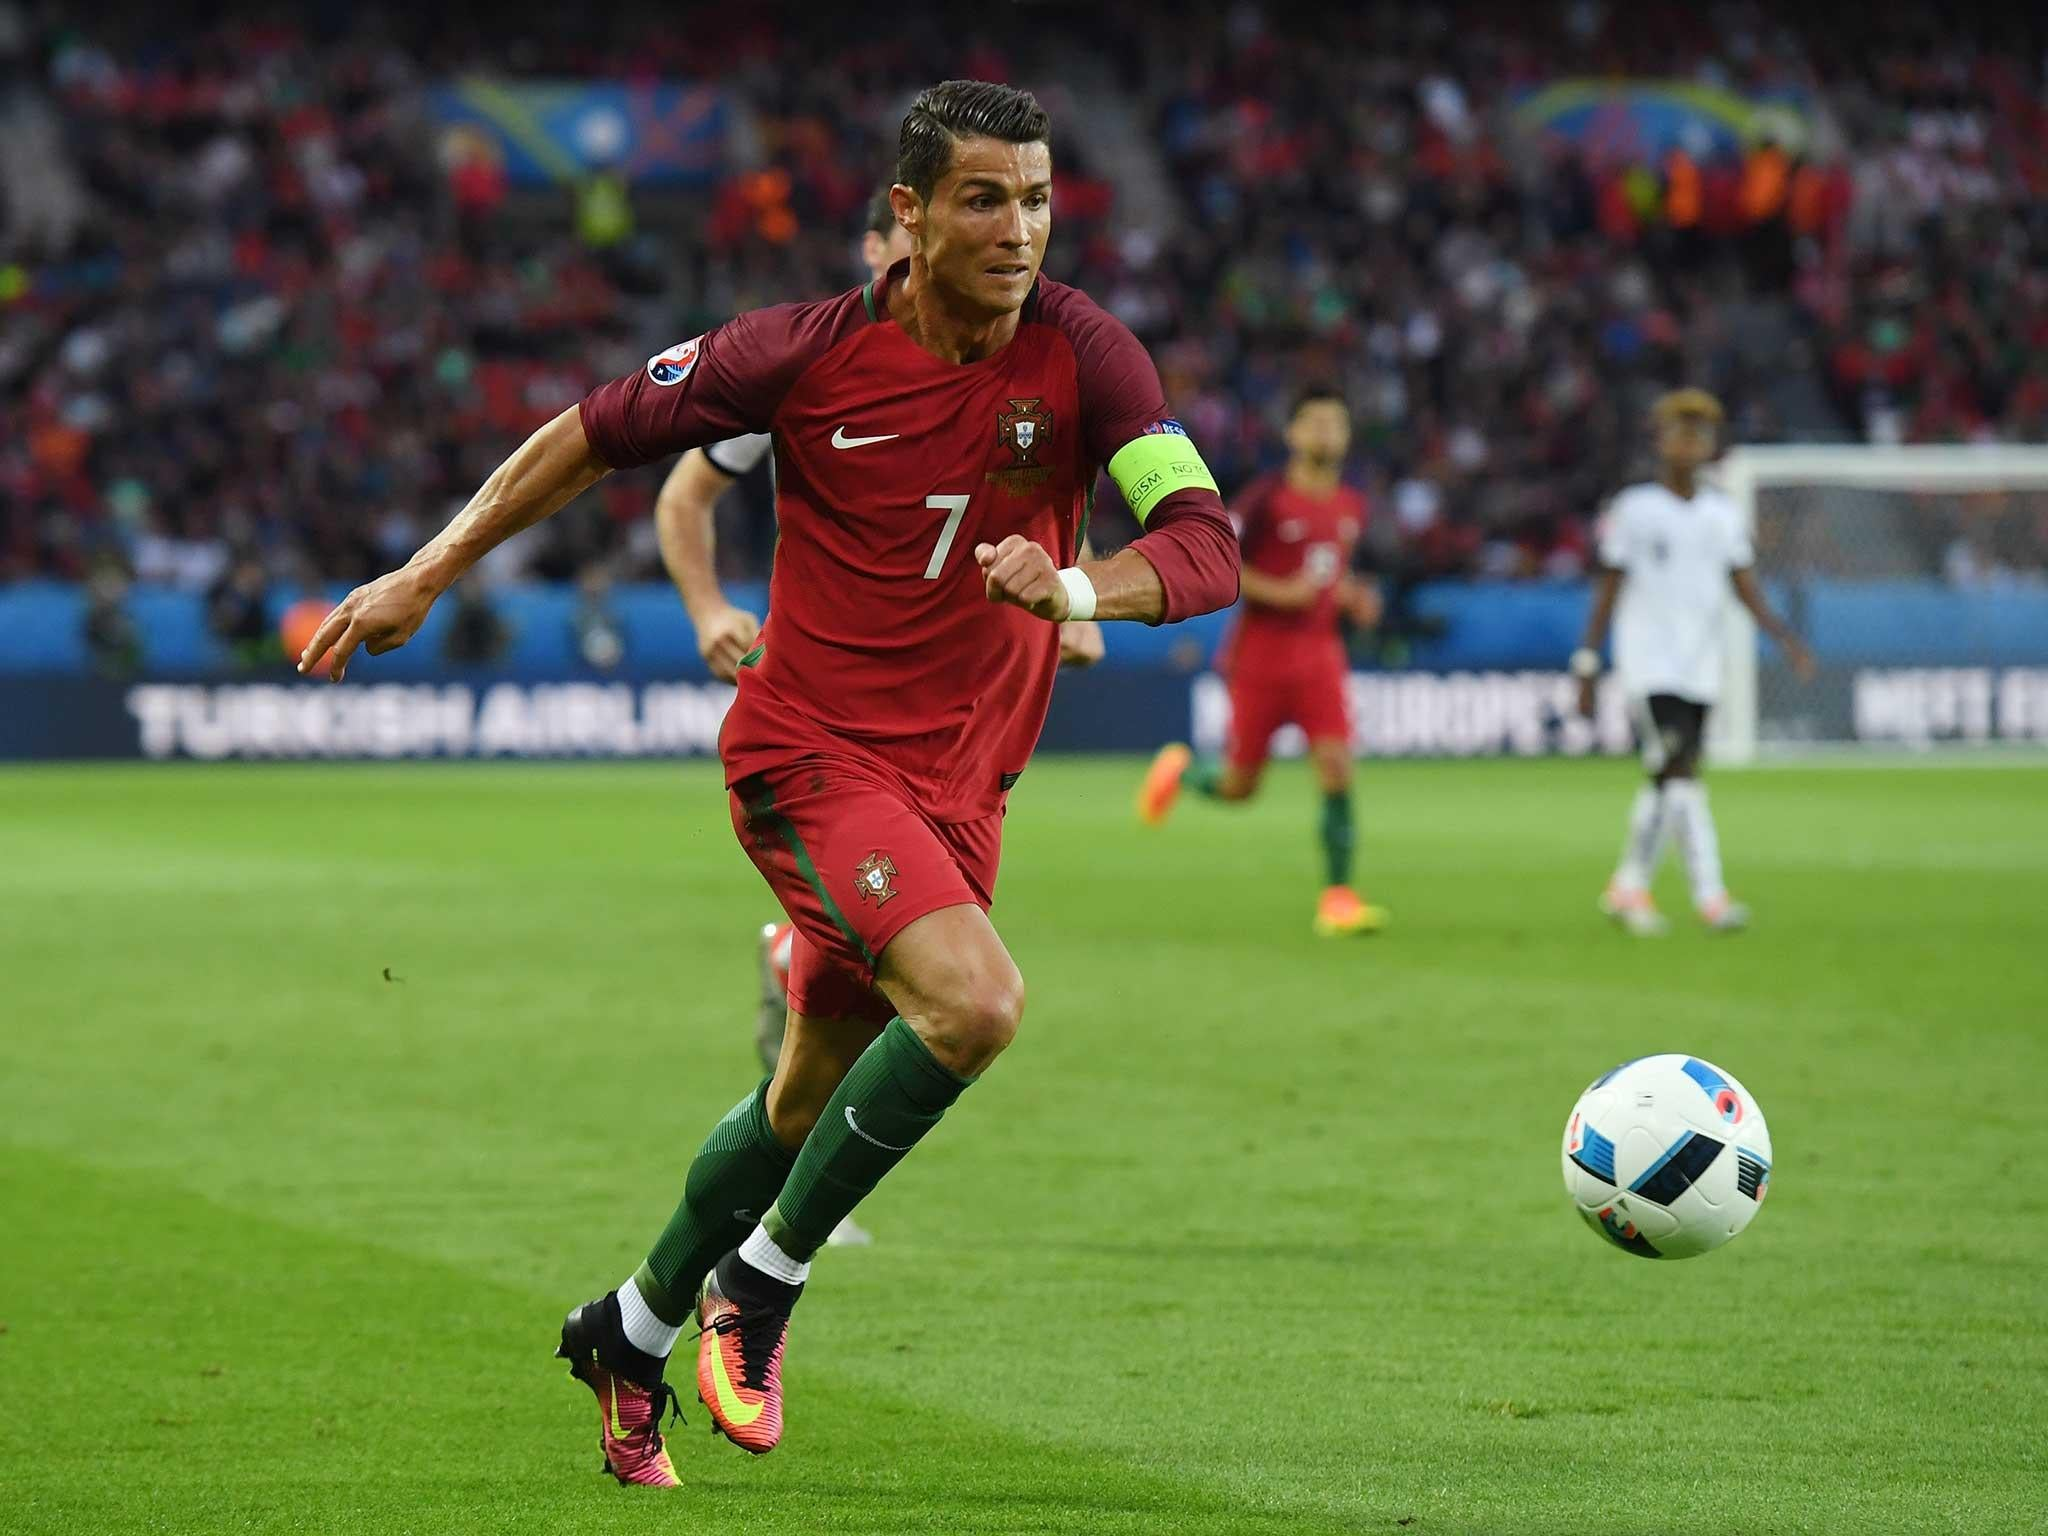 ronaldo portugal cristiano austria euro vs hungary match running game kick football uefa ronaldo7 team captain sport still penalty prediction